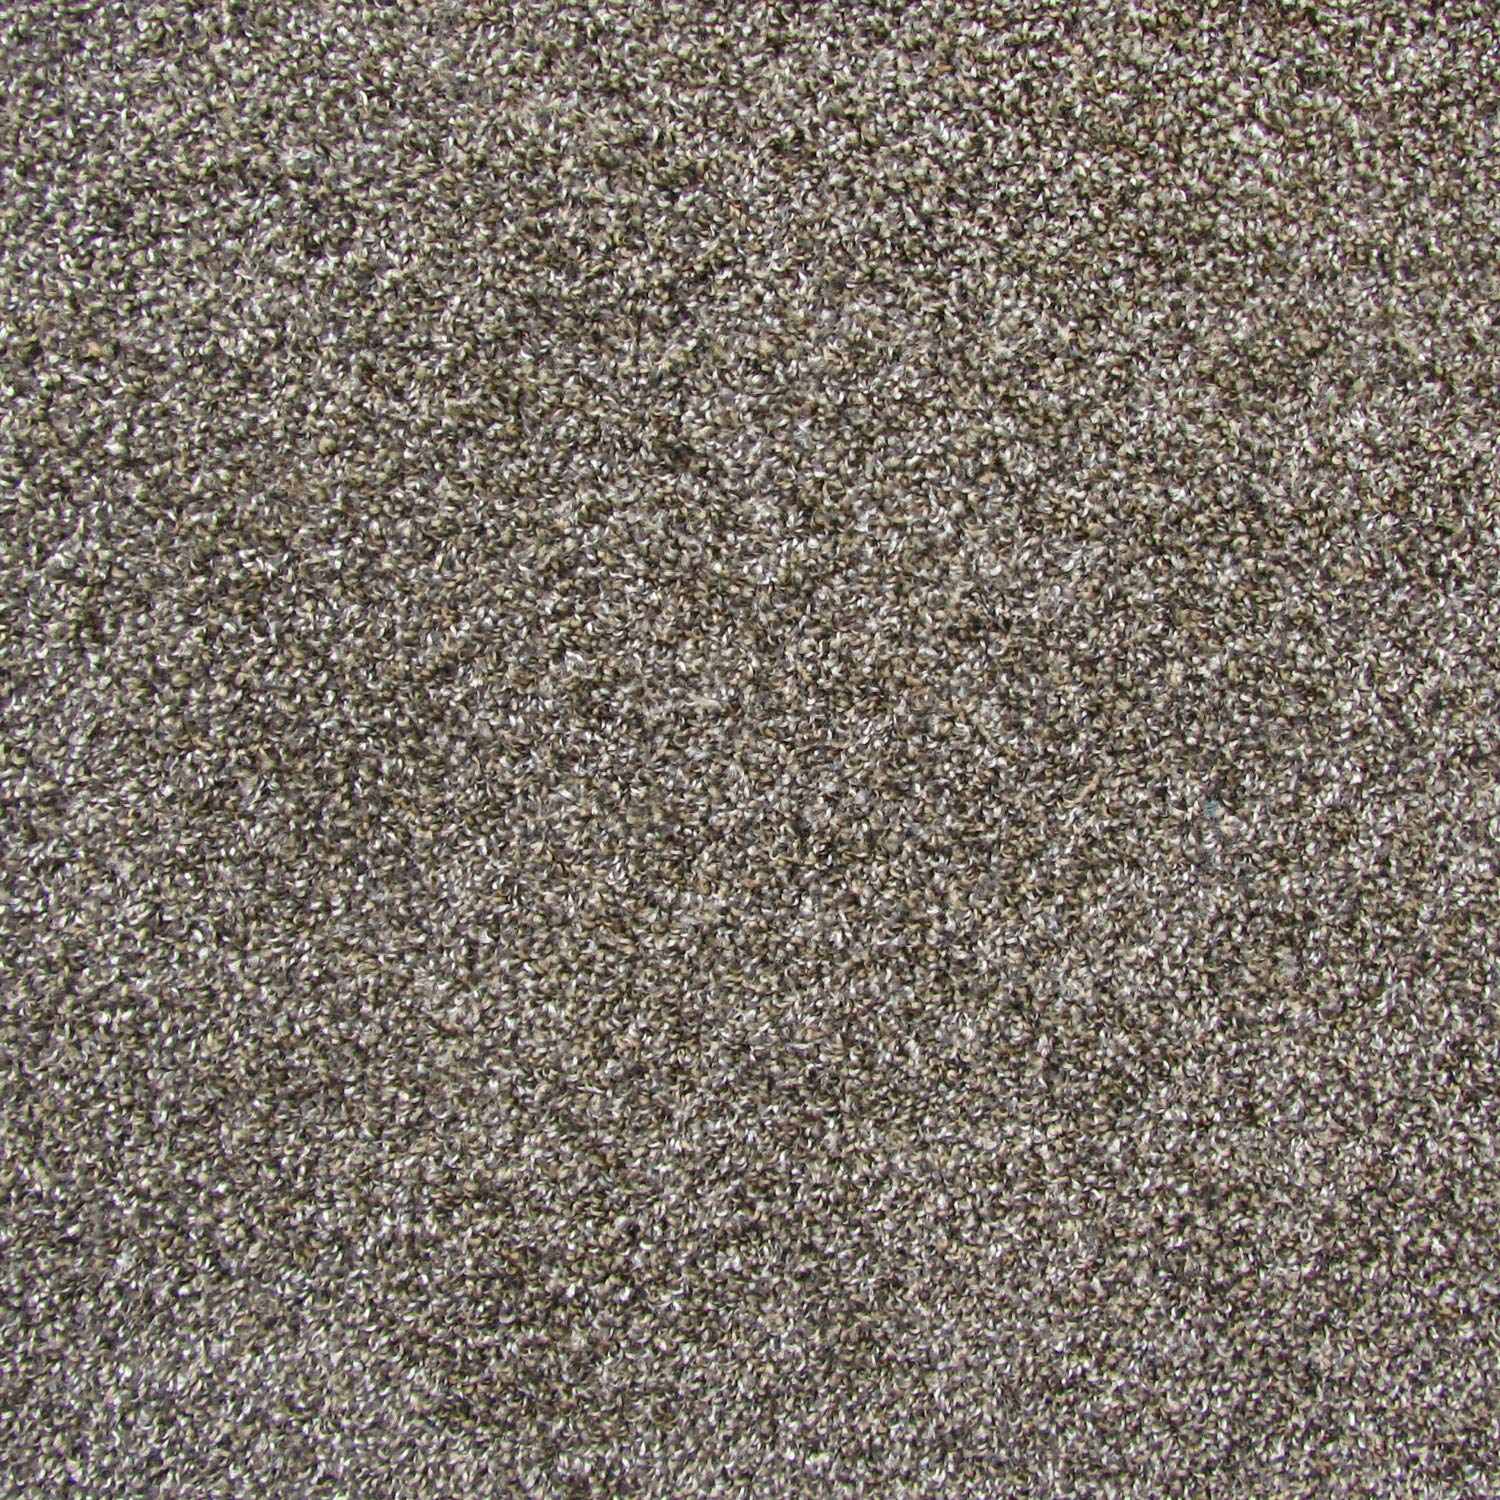 All American Carpet Tiles Wellington 23.5 x 23.5 Plush Easy to Install Do It Yourself Peel and Stick Carpet Tile Squares - 9 Tiles Per Carton - 34.52 Square Feet Per Carton (Mink) by All American Carpet Tiles LLC